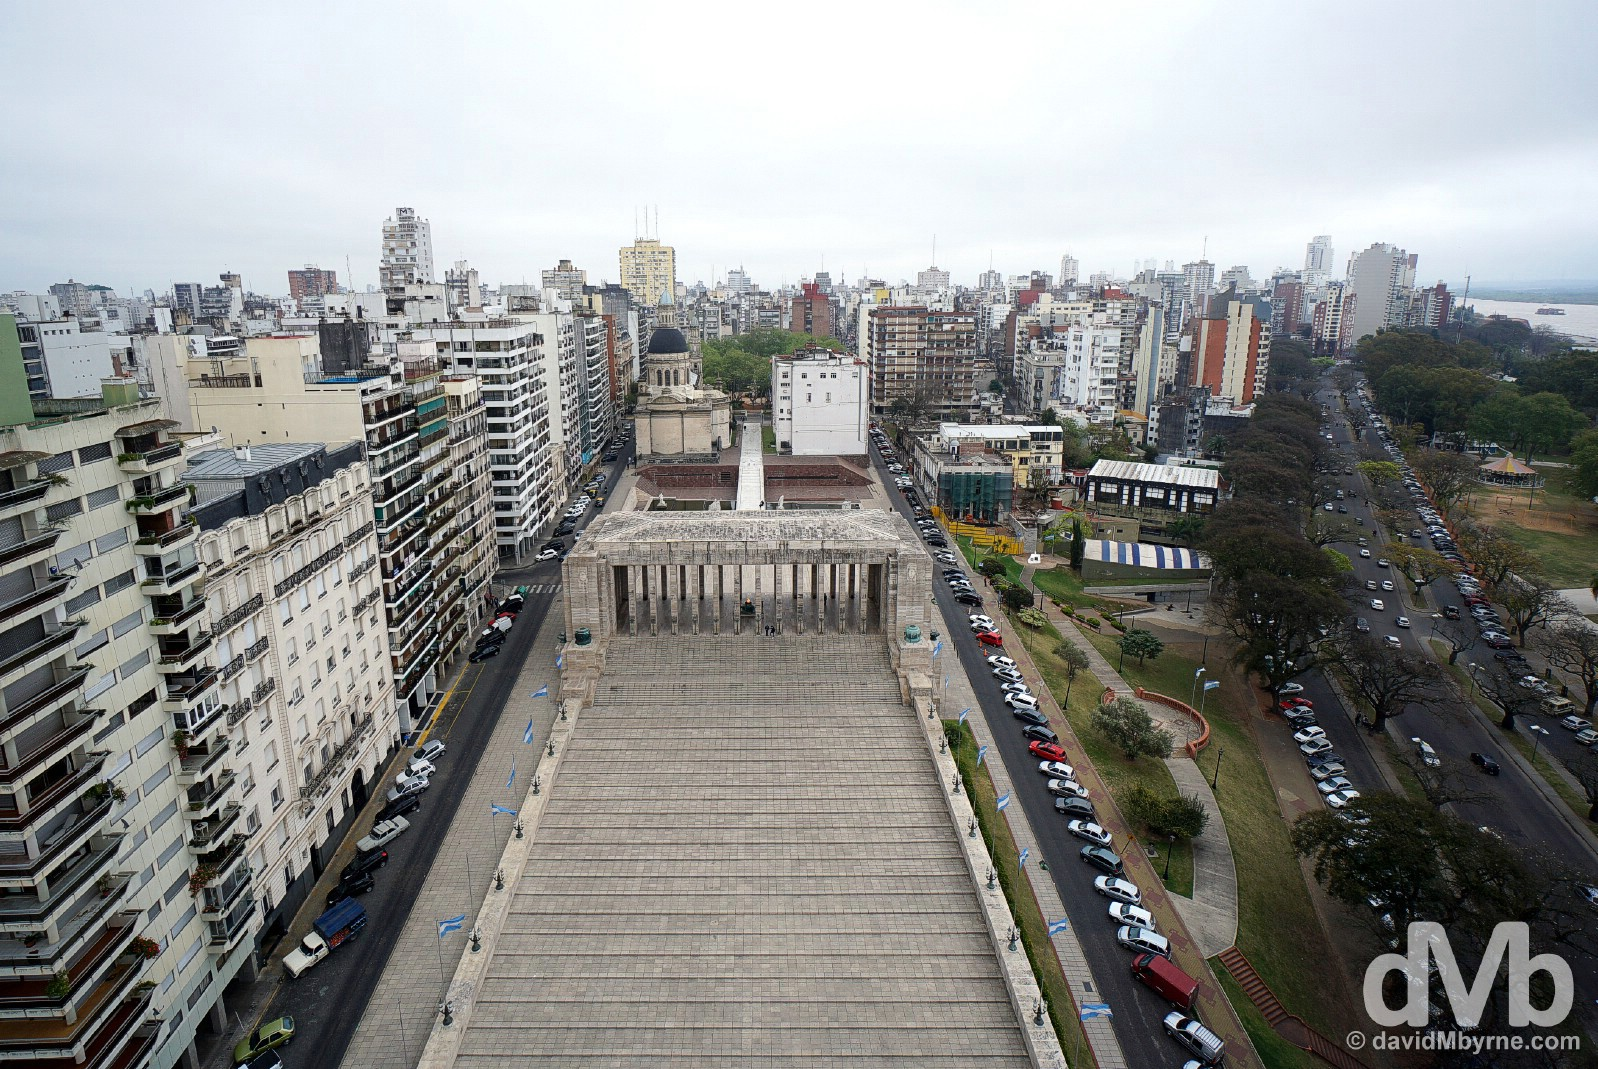 An overview of Rosario from the top of the Monumento a la Bandera in Roasrio, Argentina. September 22, 2015.